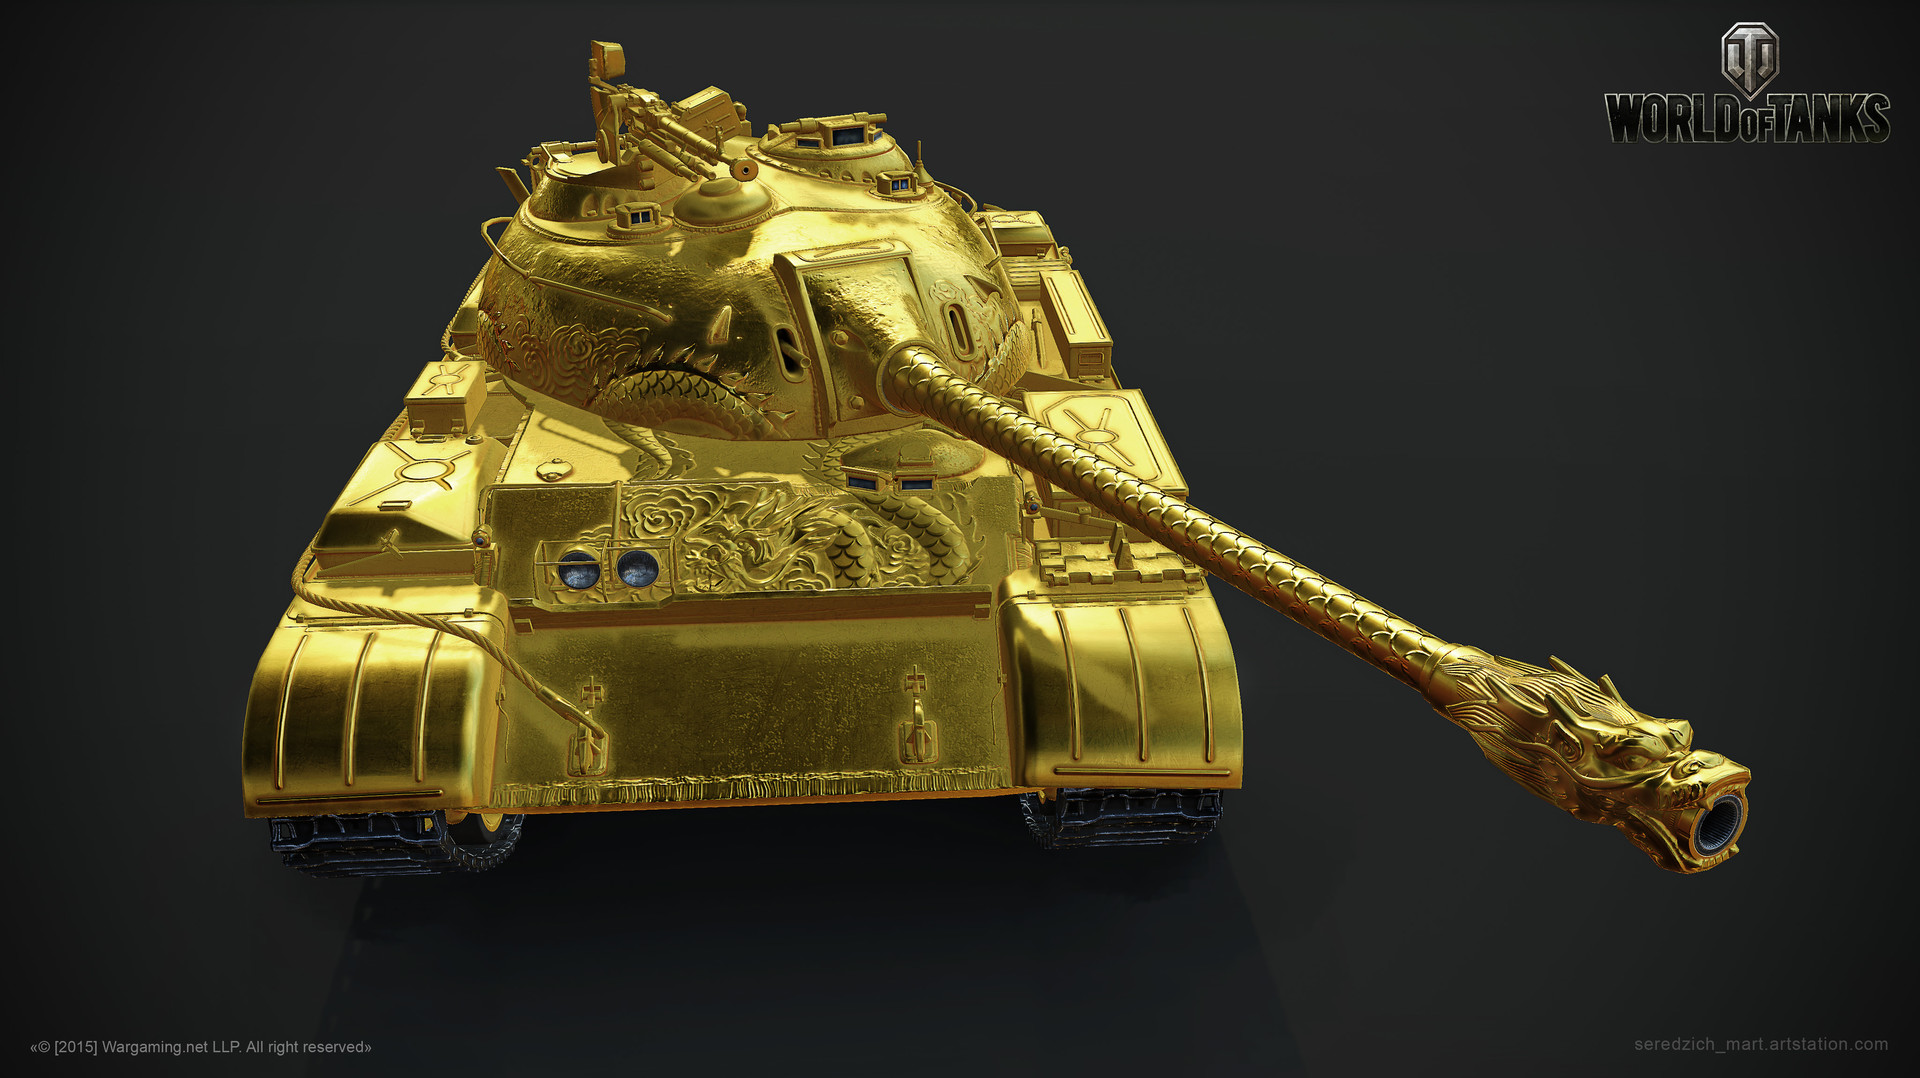 world of tanks friendly fire mod